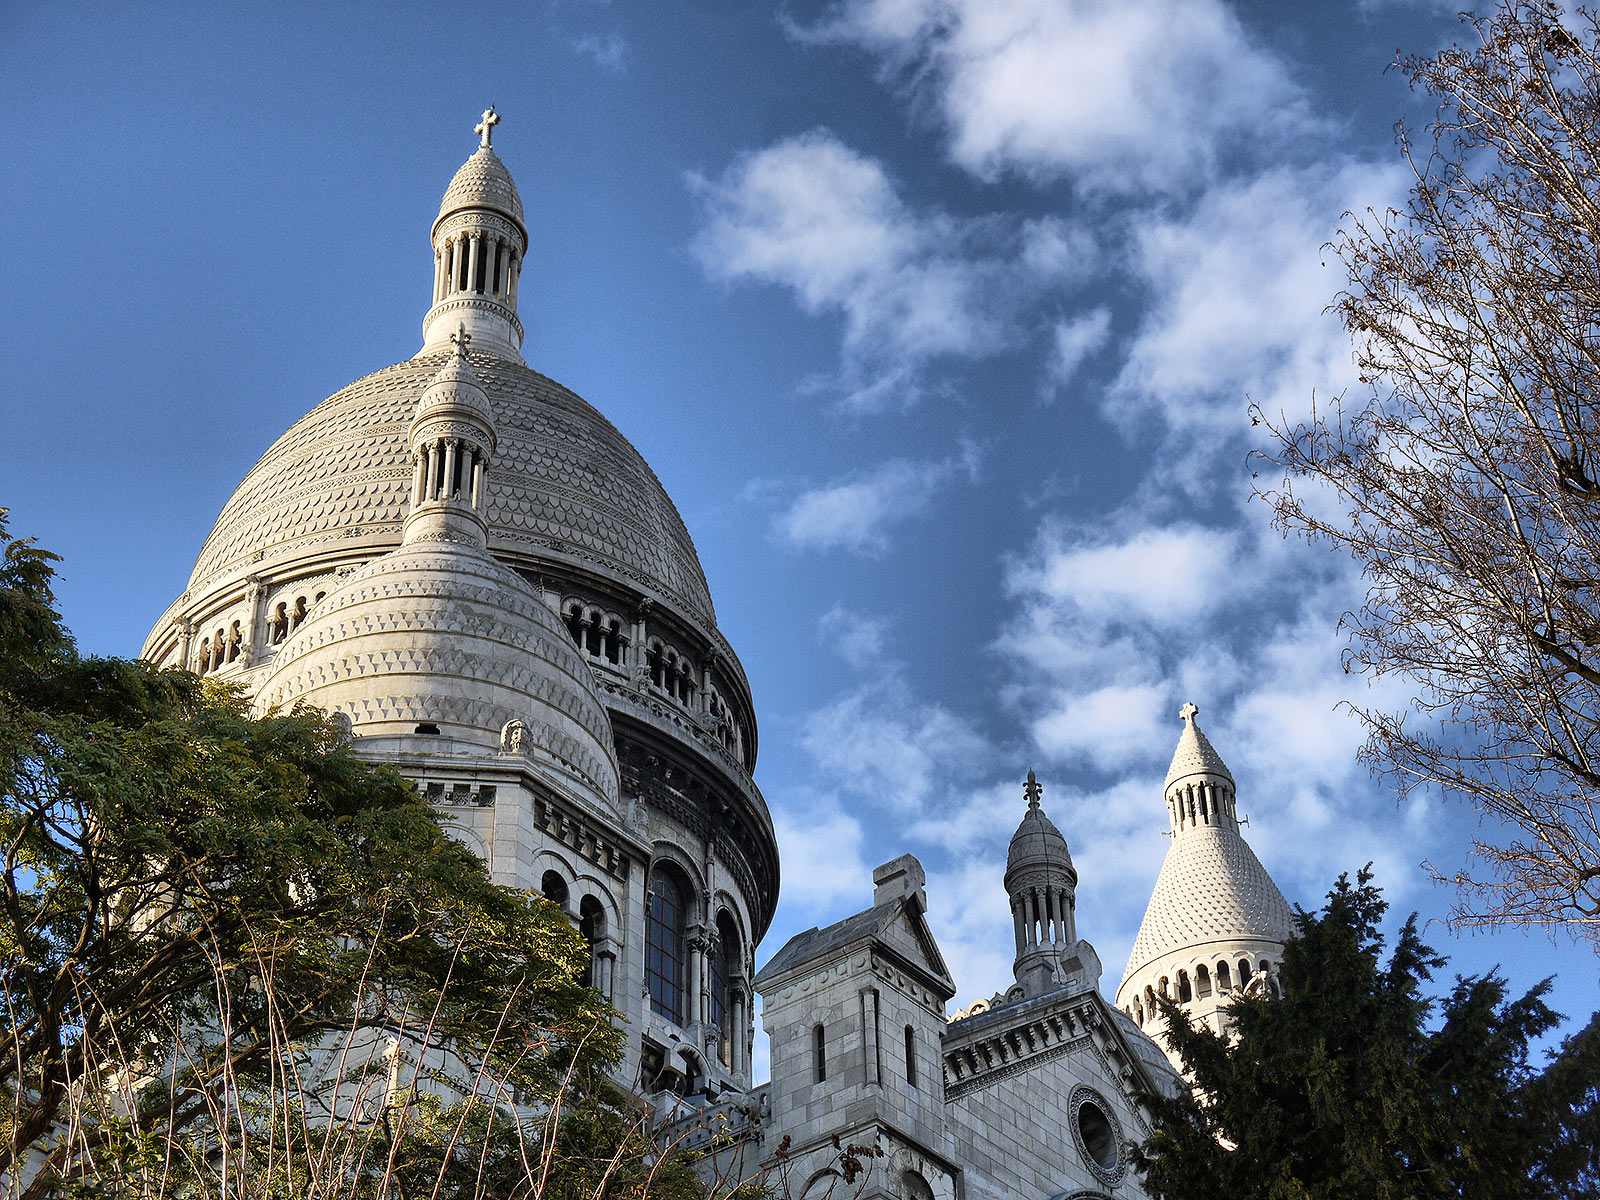 Looking Up at the Sacré-Coeur Basilica - Paris, France